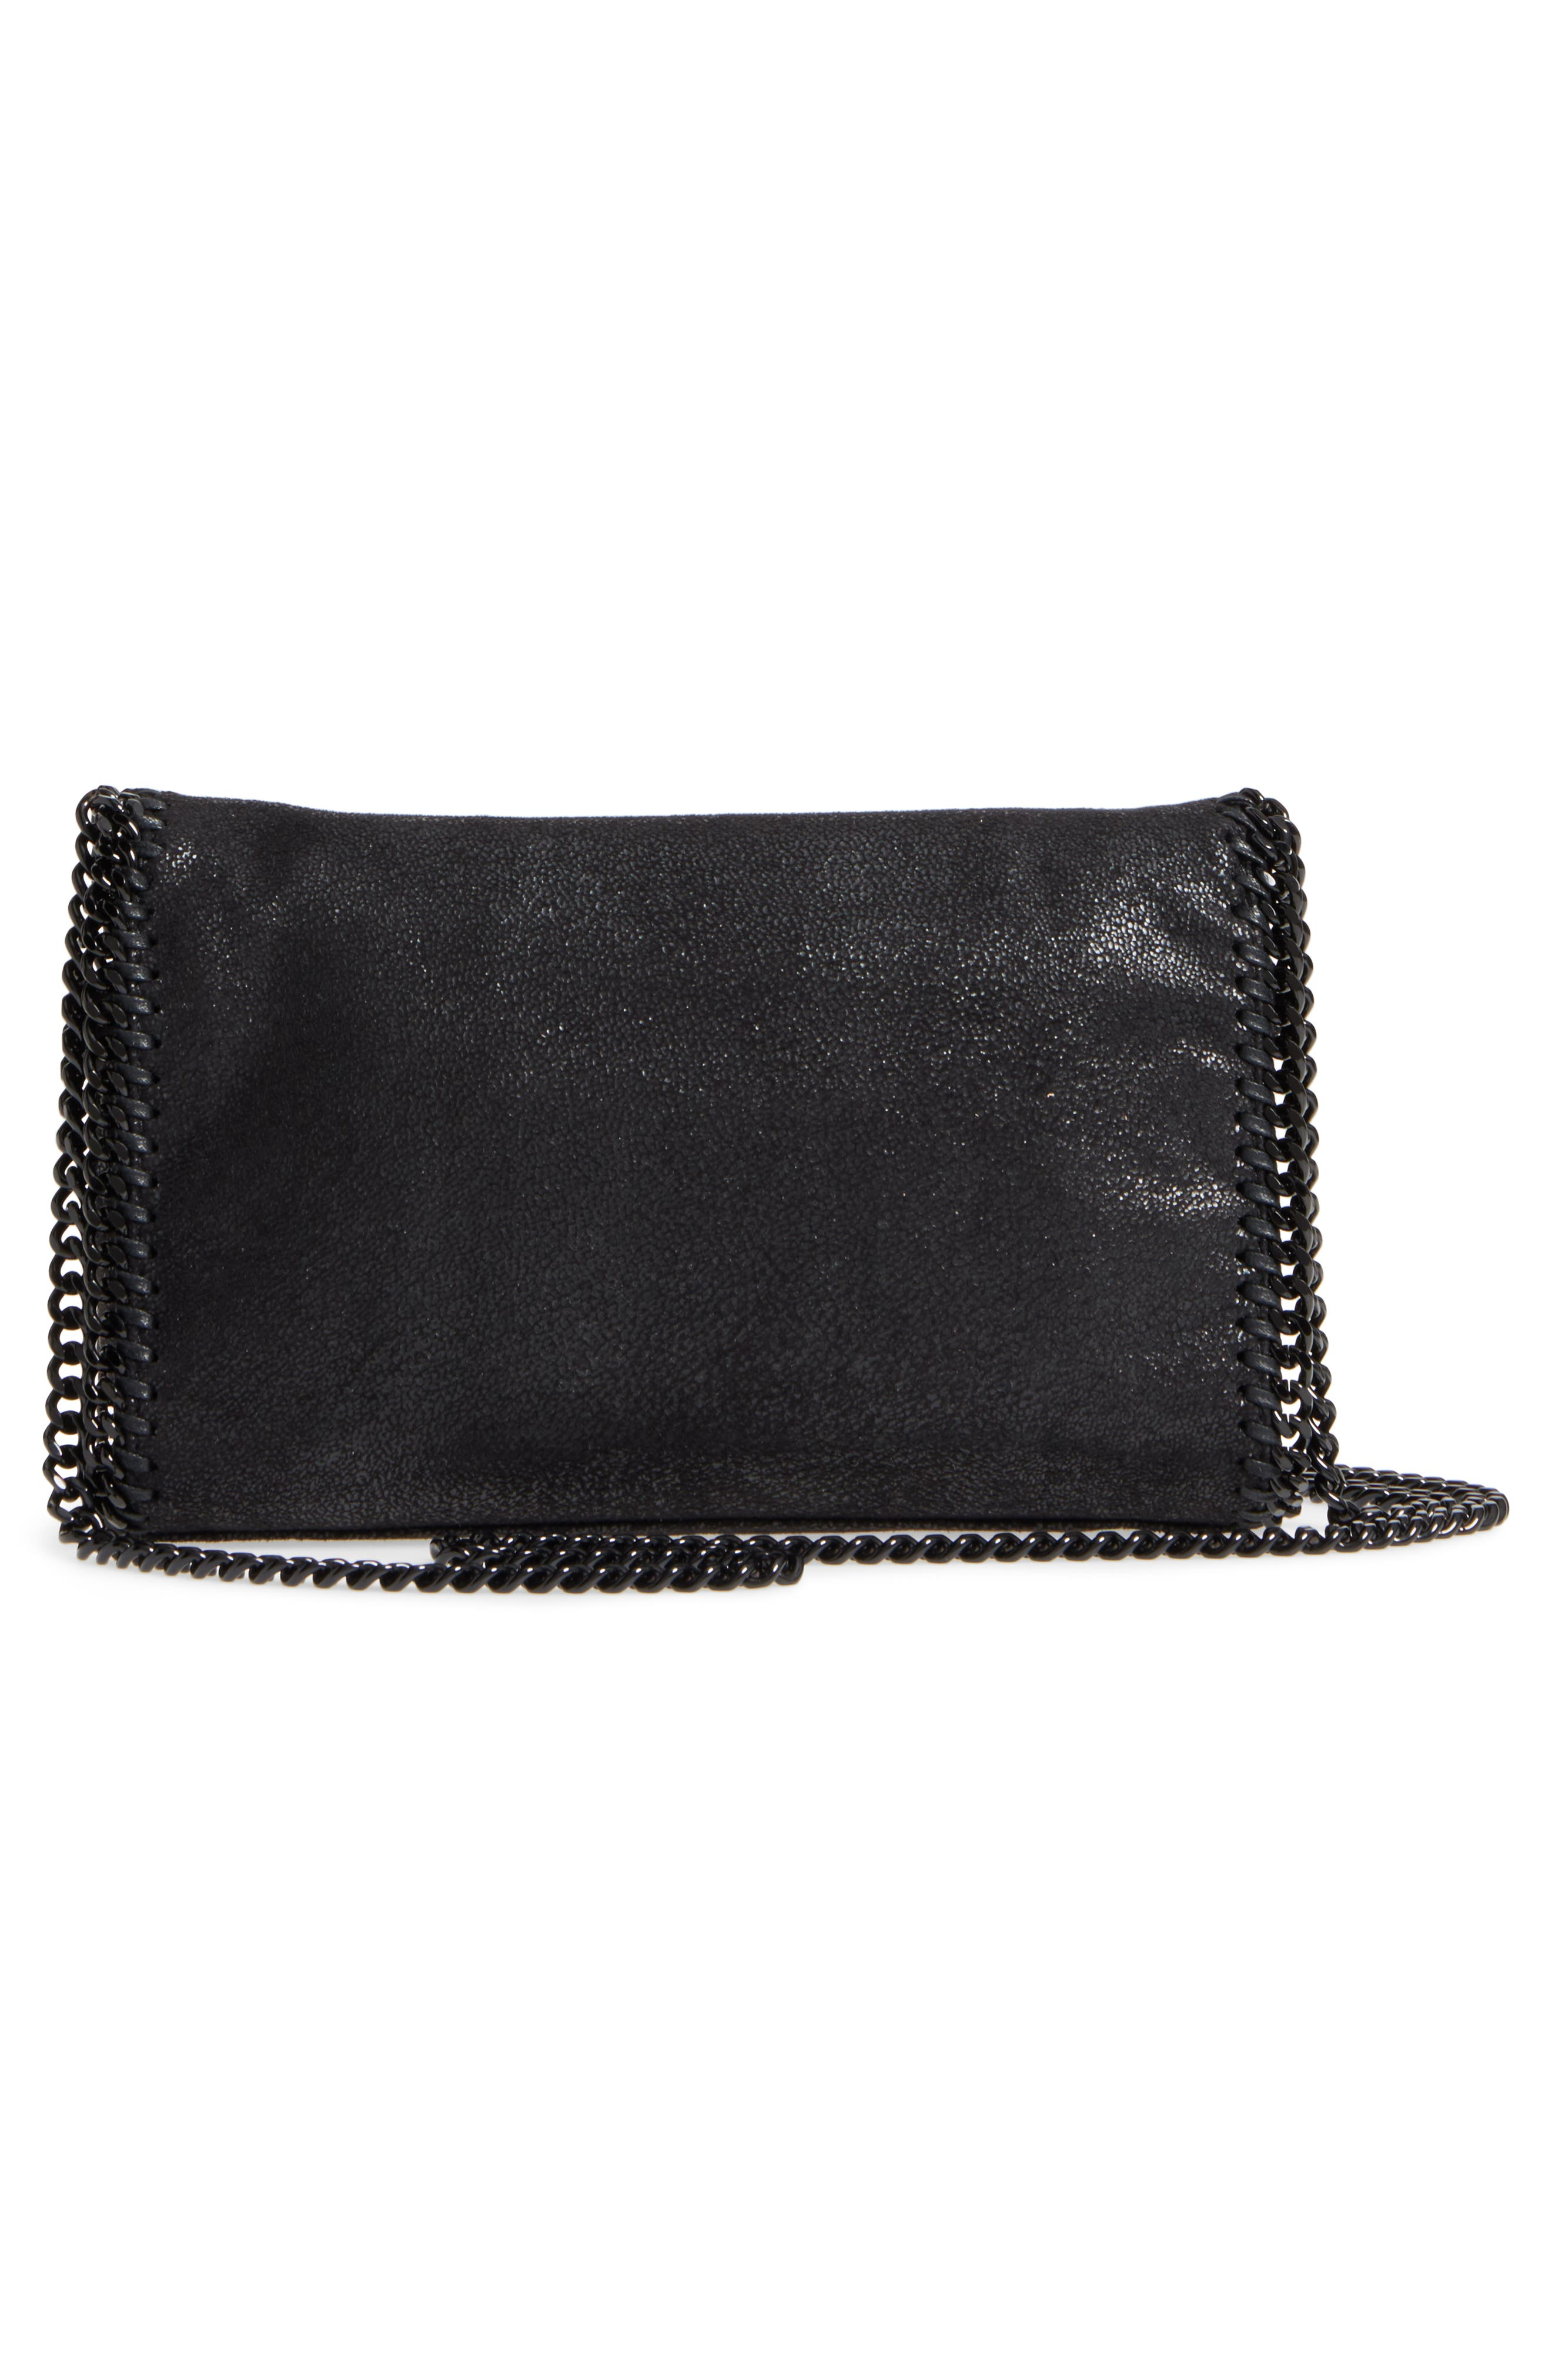 Mini Falabella - Shaggy Deer Faux Leather Crossbody Bag,                             Alternate thumbnail 3, color,                             001